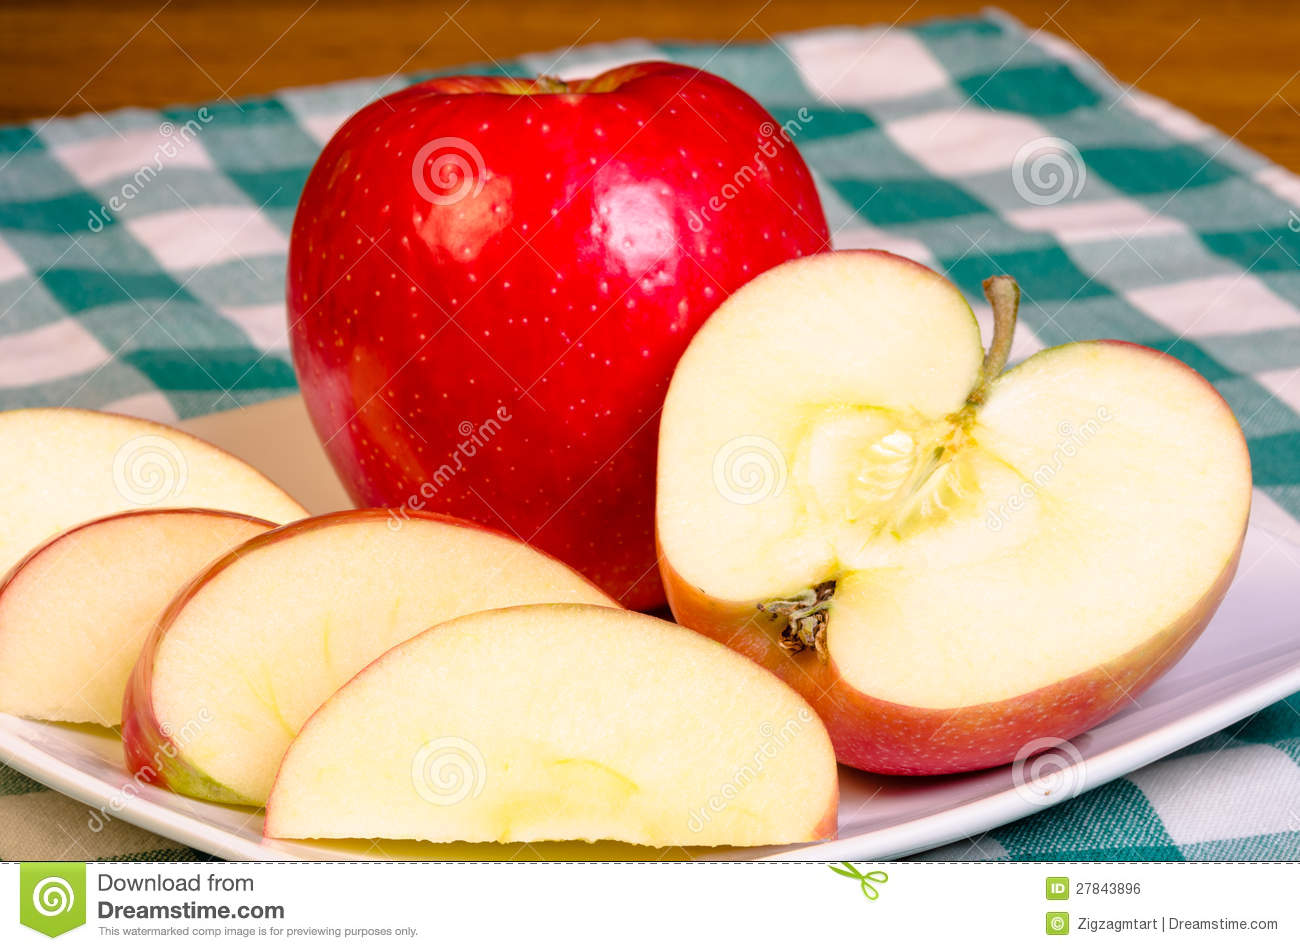 Red Apple Sliced On Plate Royalty Free Stock Image - Image: 27843896